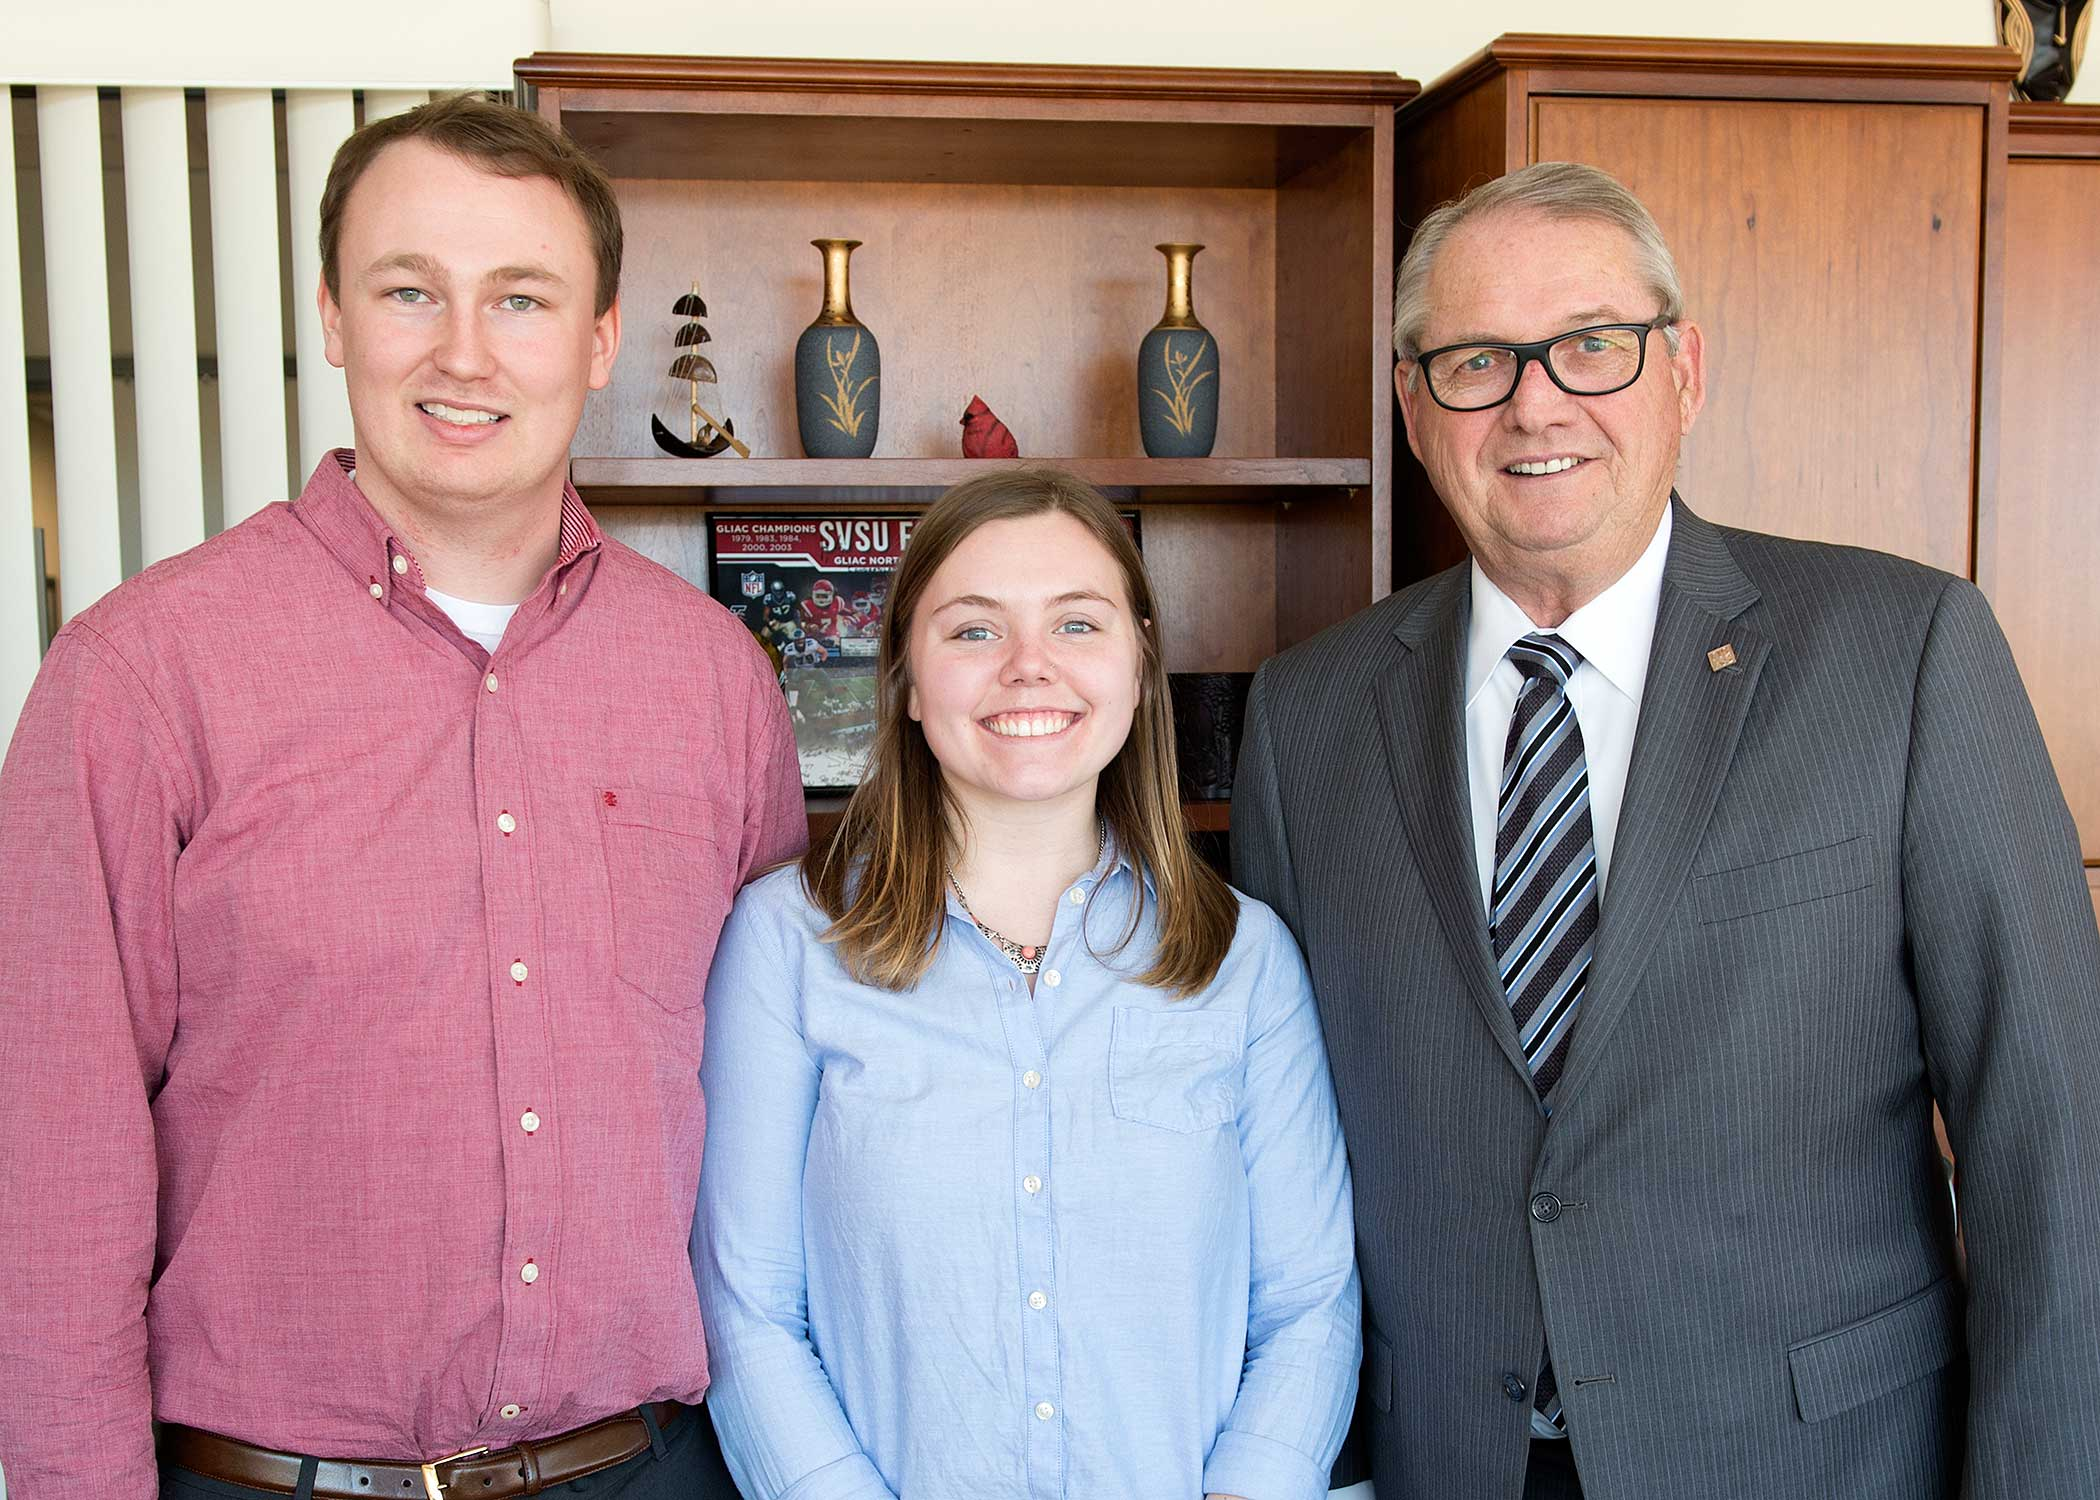 Cody McKay (Student Association president), Lauren Kreiss (Student Association president elect) and SVSU President Donald Bachand.